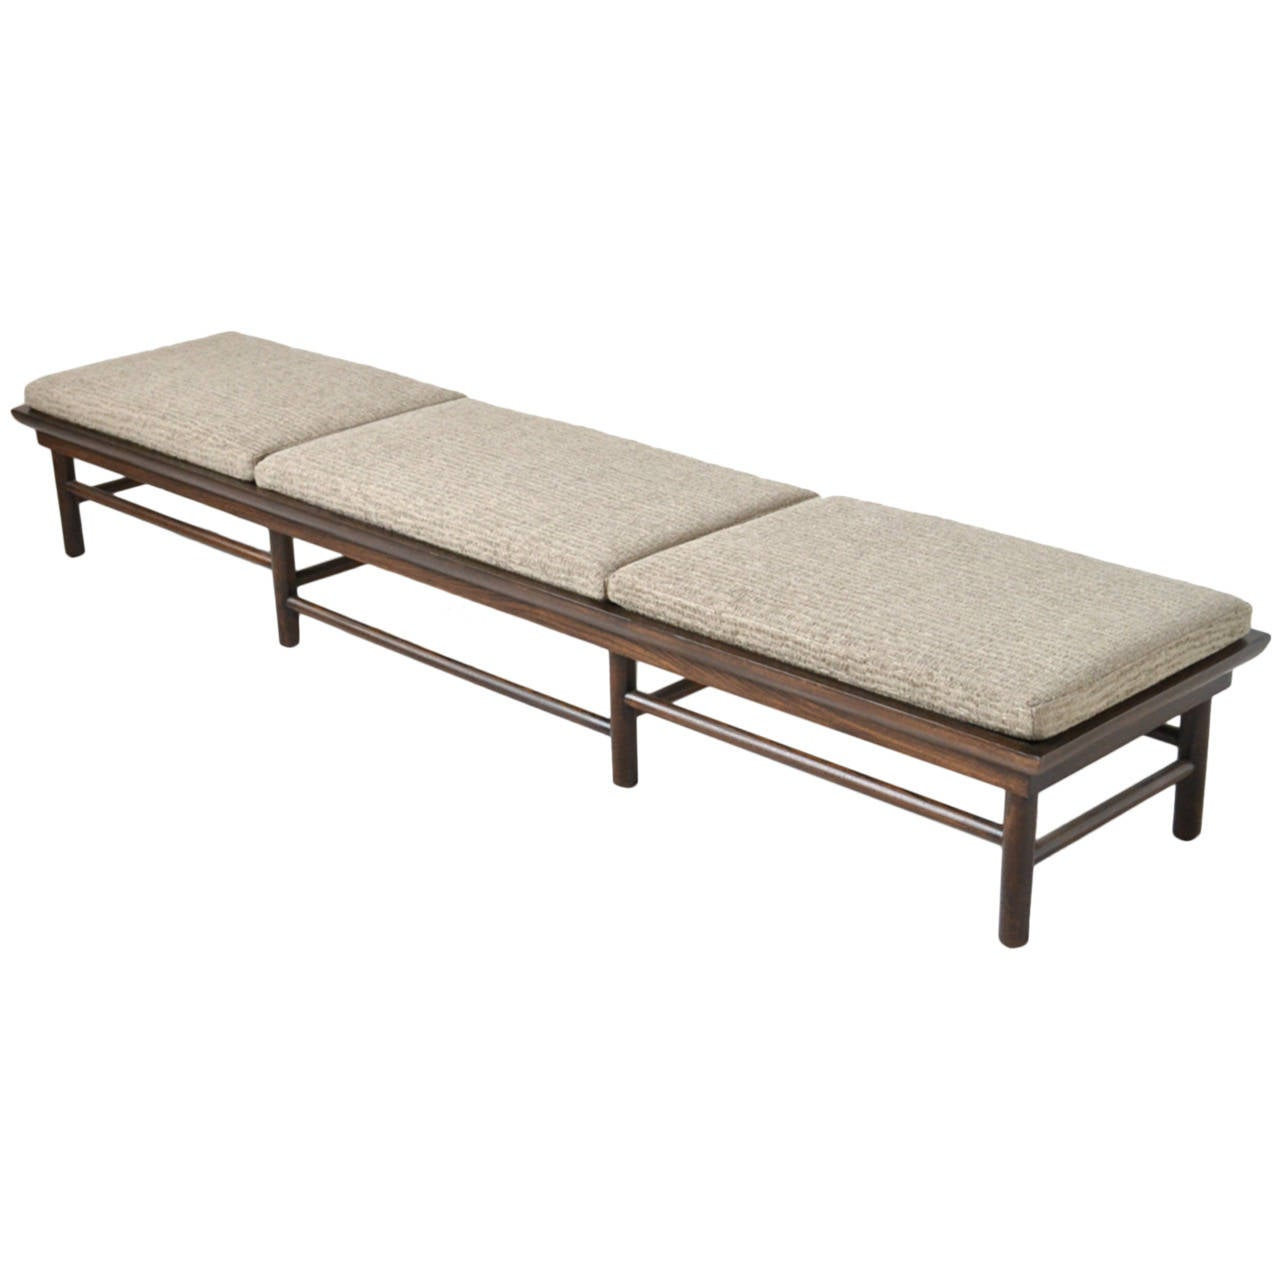 Long Bench Or Table In The Manner Of Edward Wormley For Sale At 1stdibs